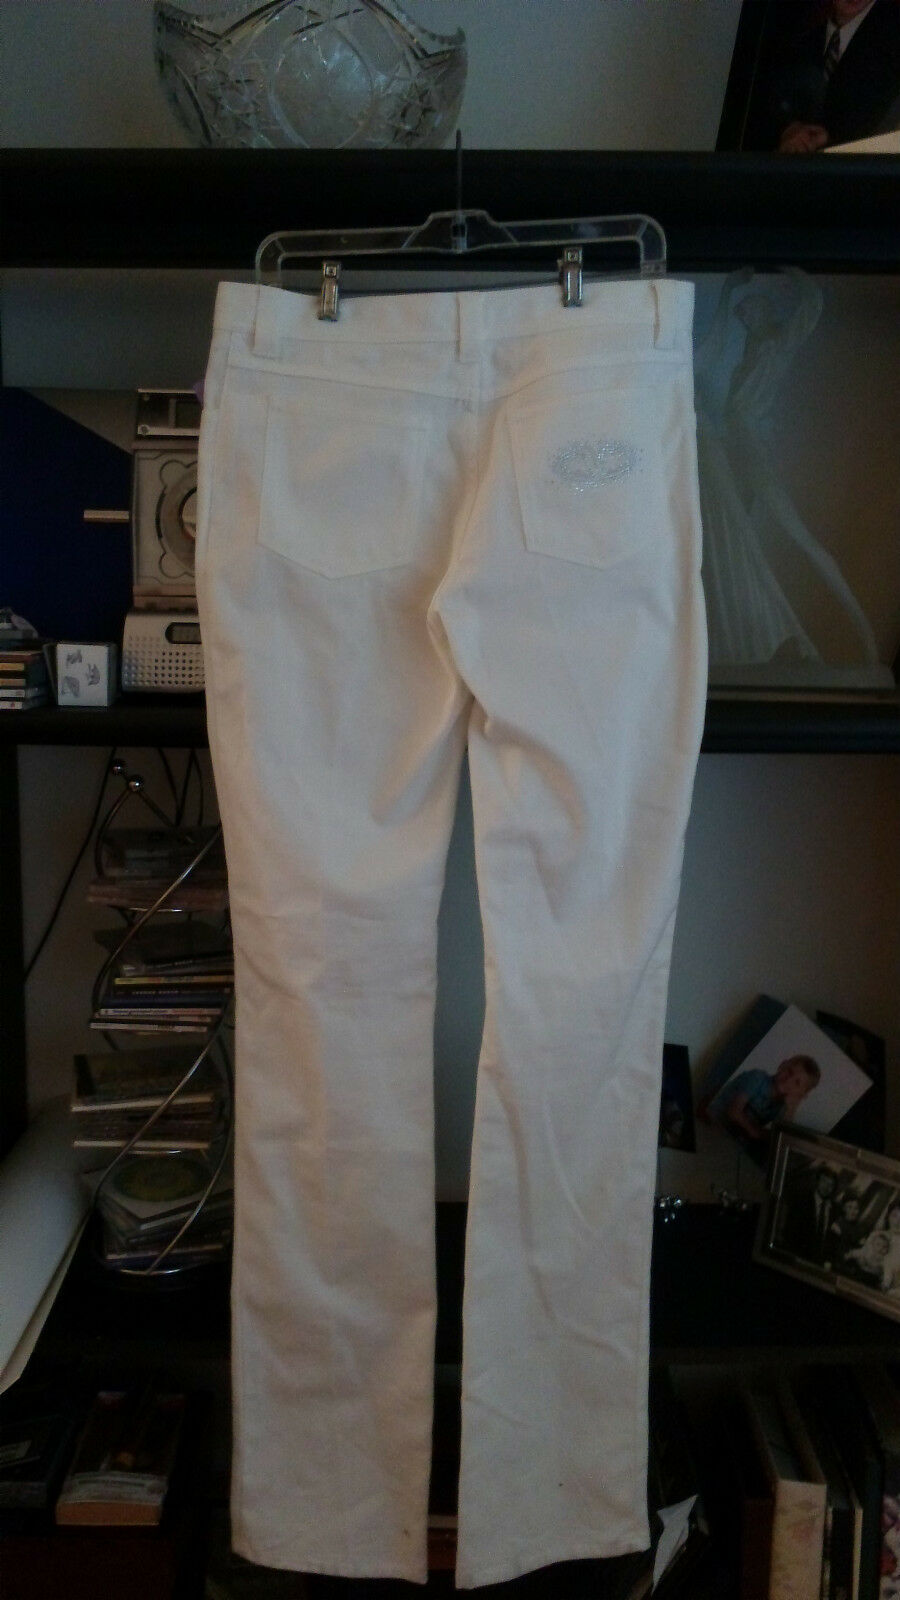 NEW Ladies authentic white VALENTINO jeans, s12, 47', Cotton Blend and Mid-Rise